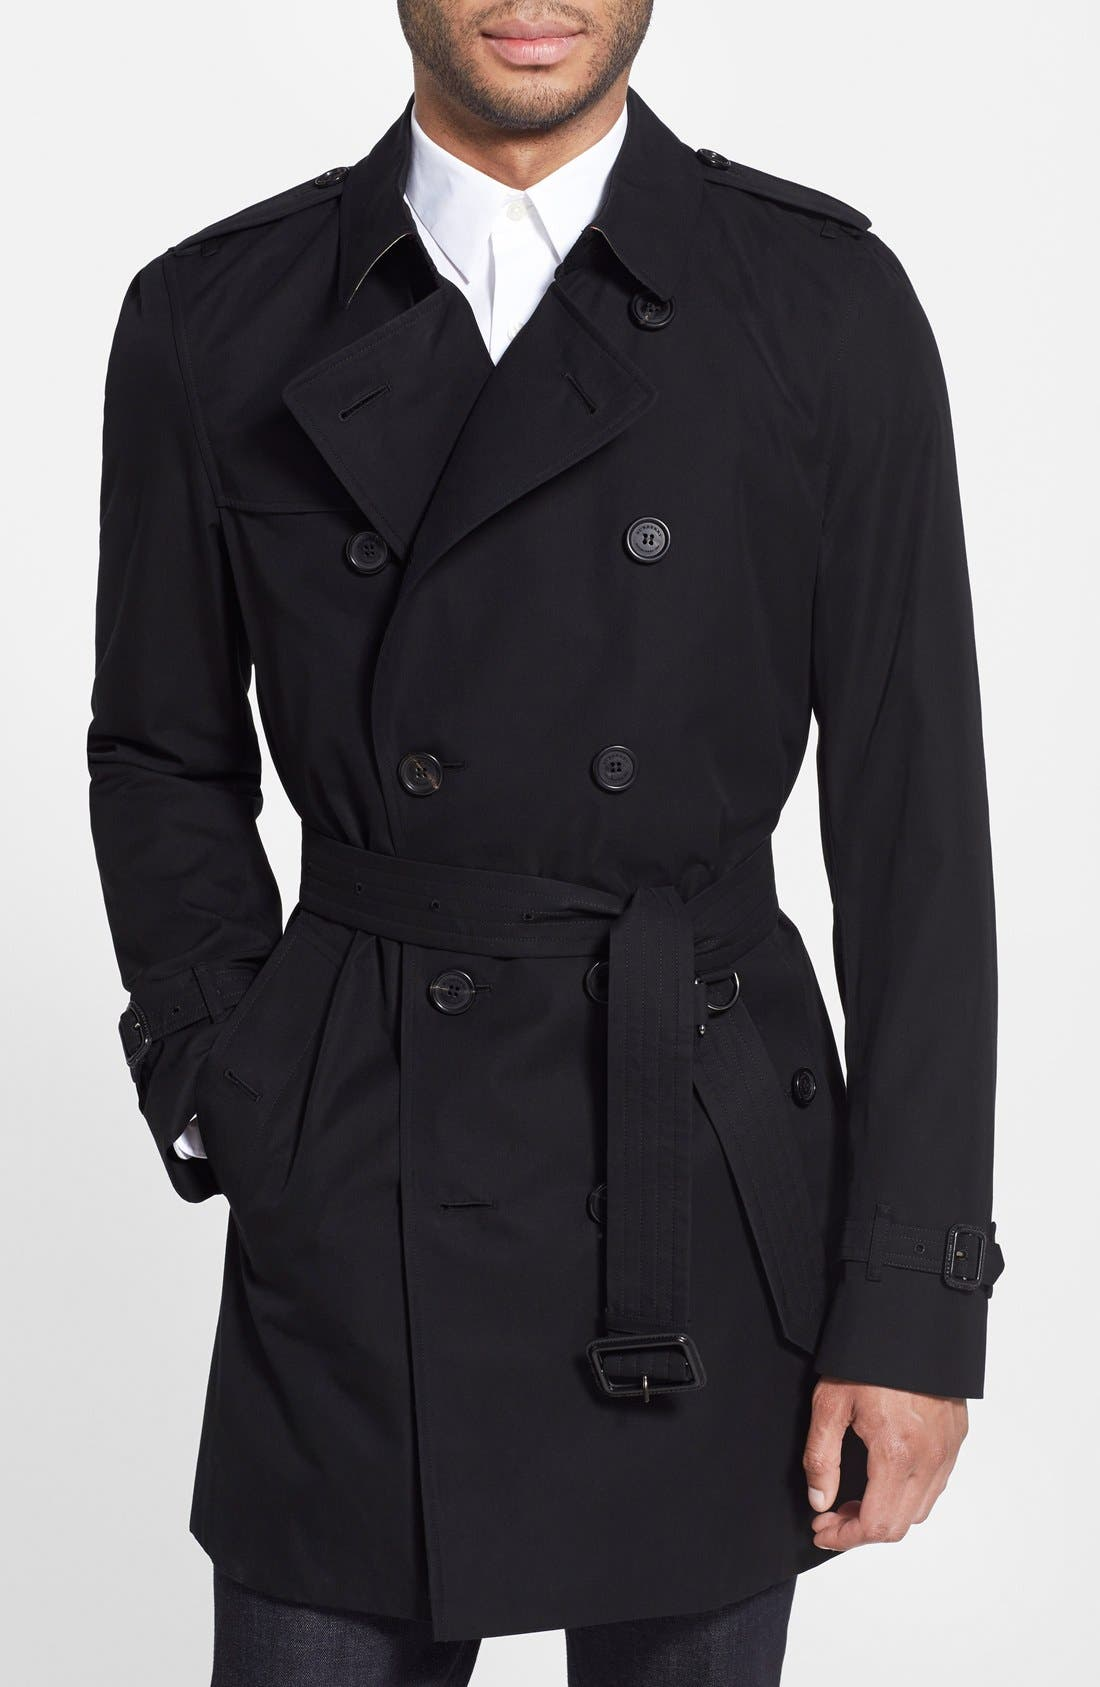 Burberry Kensington Double Breasted Trench Coat (Regular & Big)